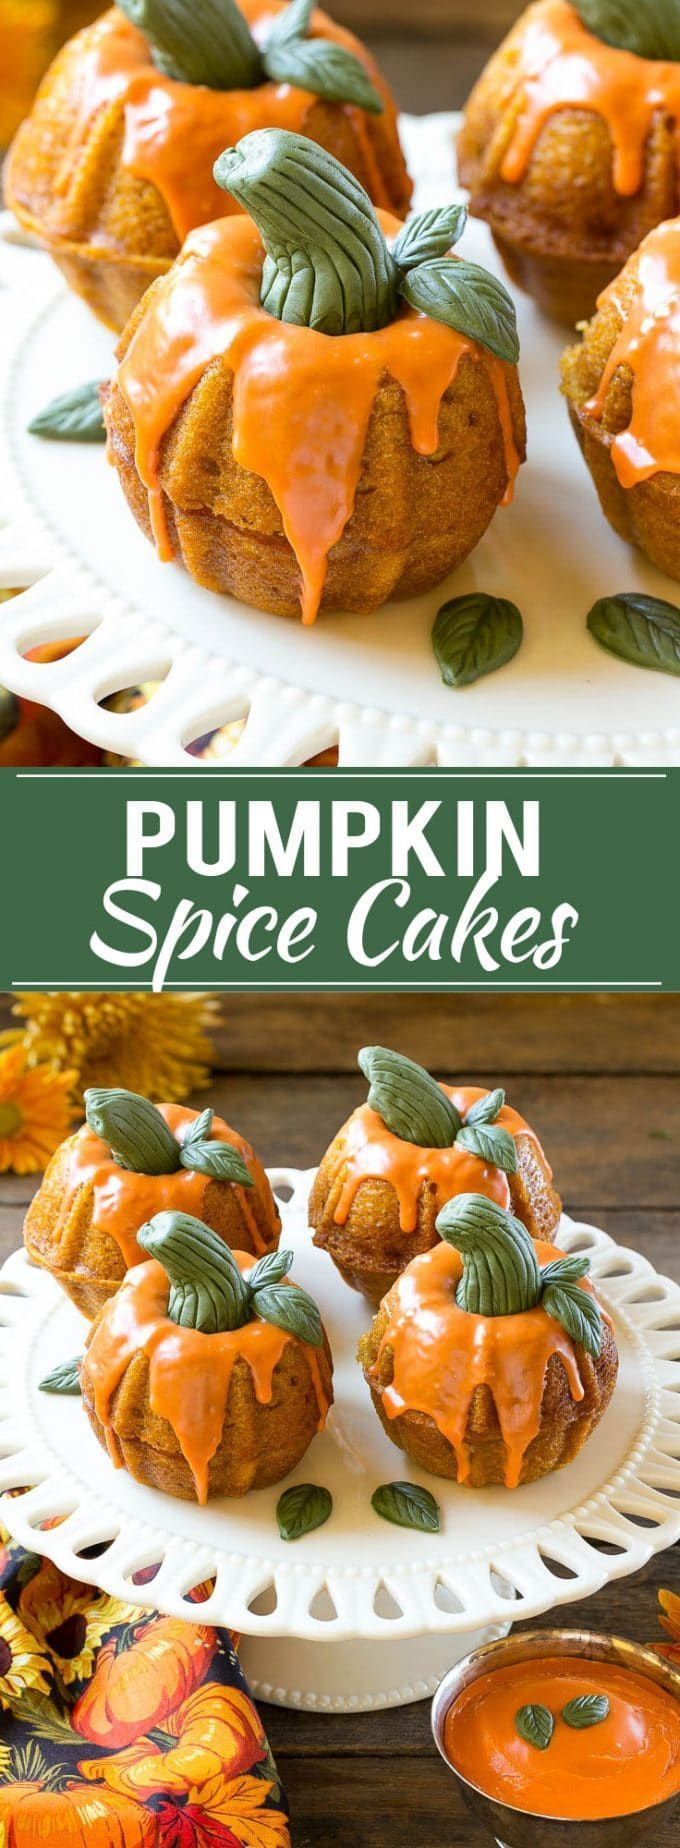 Pumpkin Spice Cake Recipe | Pumpkin Cake | Easy Pumpkin Cake | Thanksgiving Dessert Awe! These mini bunds cakes-turned pumpkin spice are adorable and perfect for a fall party or family dinner.